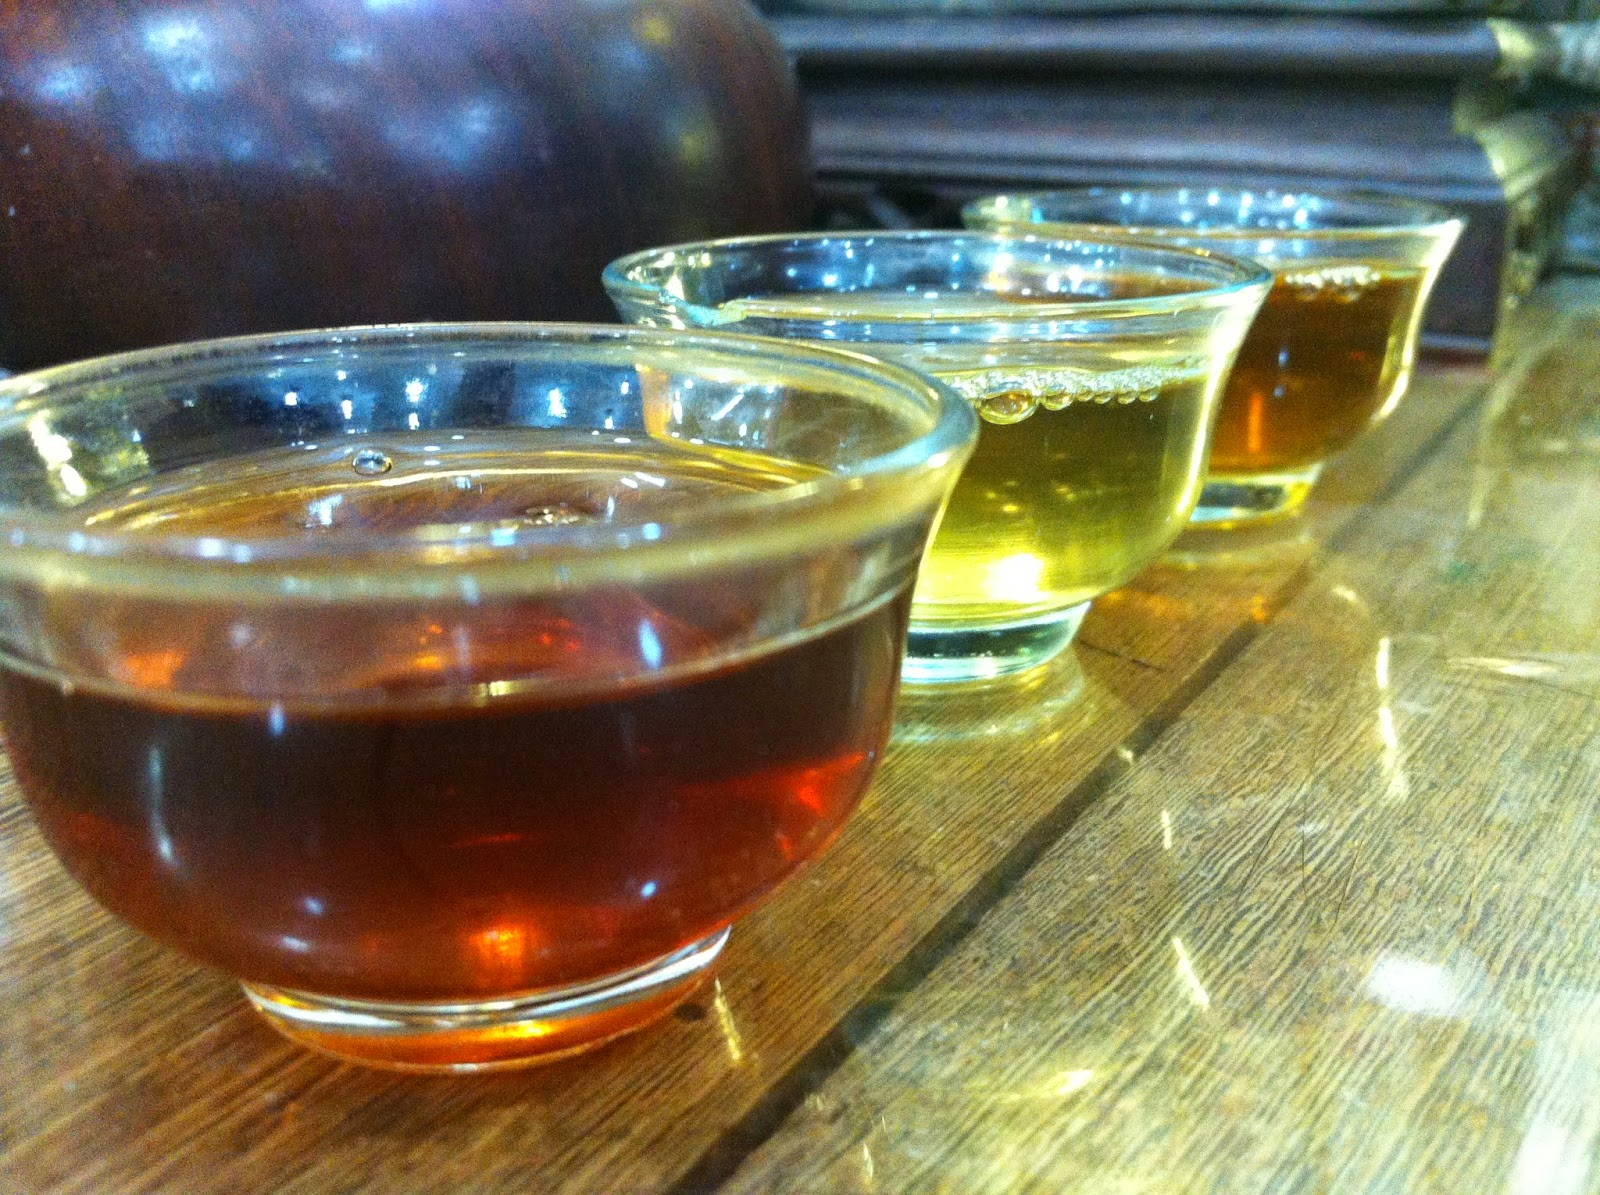 Different teas for a tasting